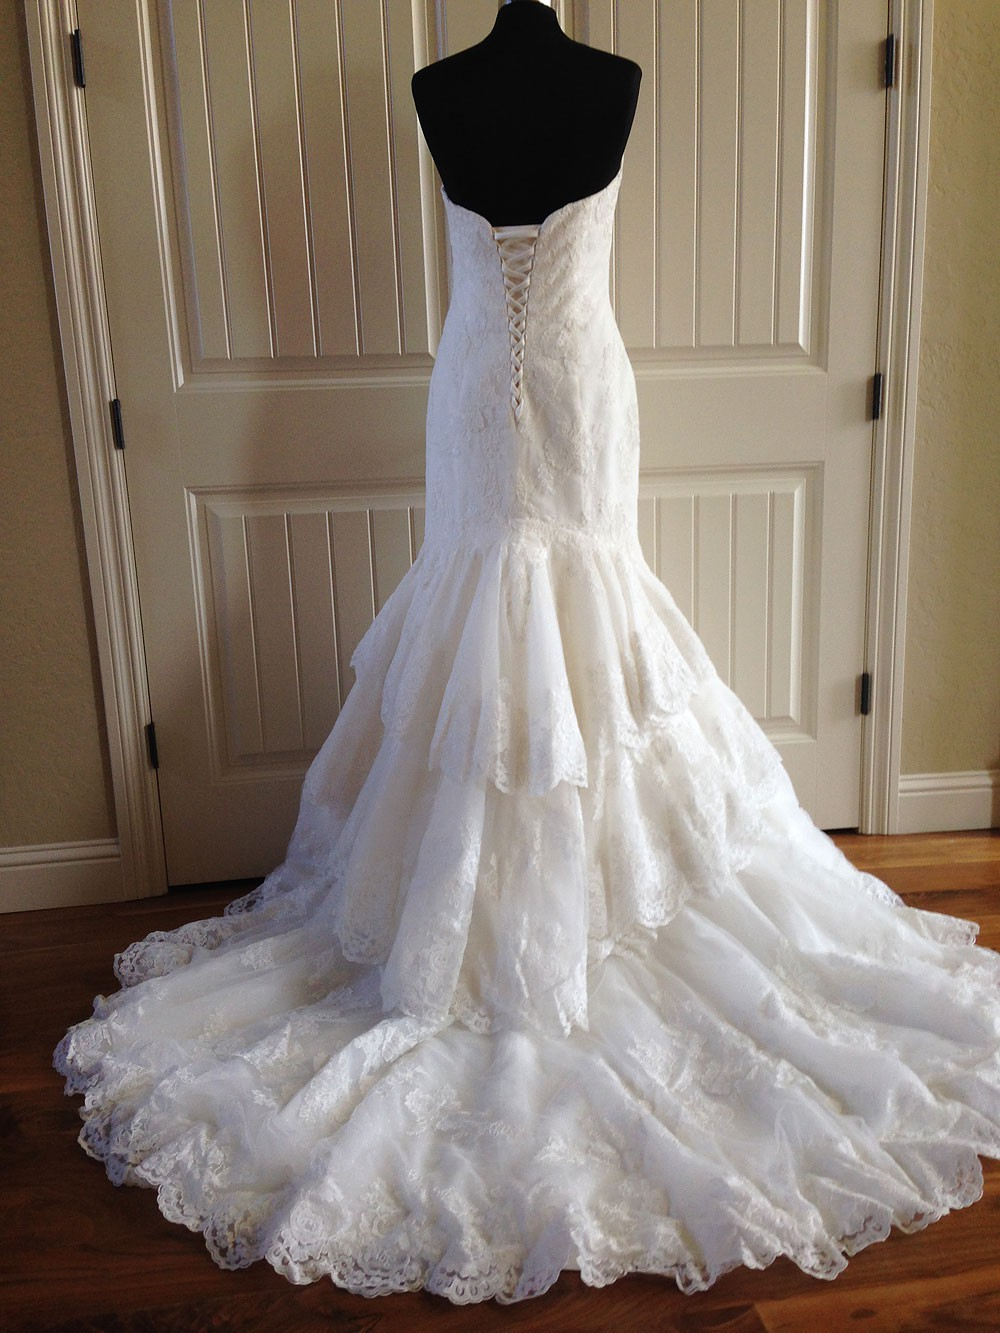 Maggie sottero larissa second hand wedding dress on sale for Second hand wedding dresses for sale